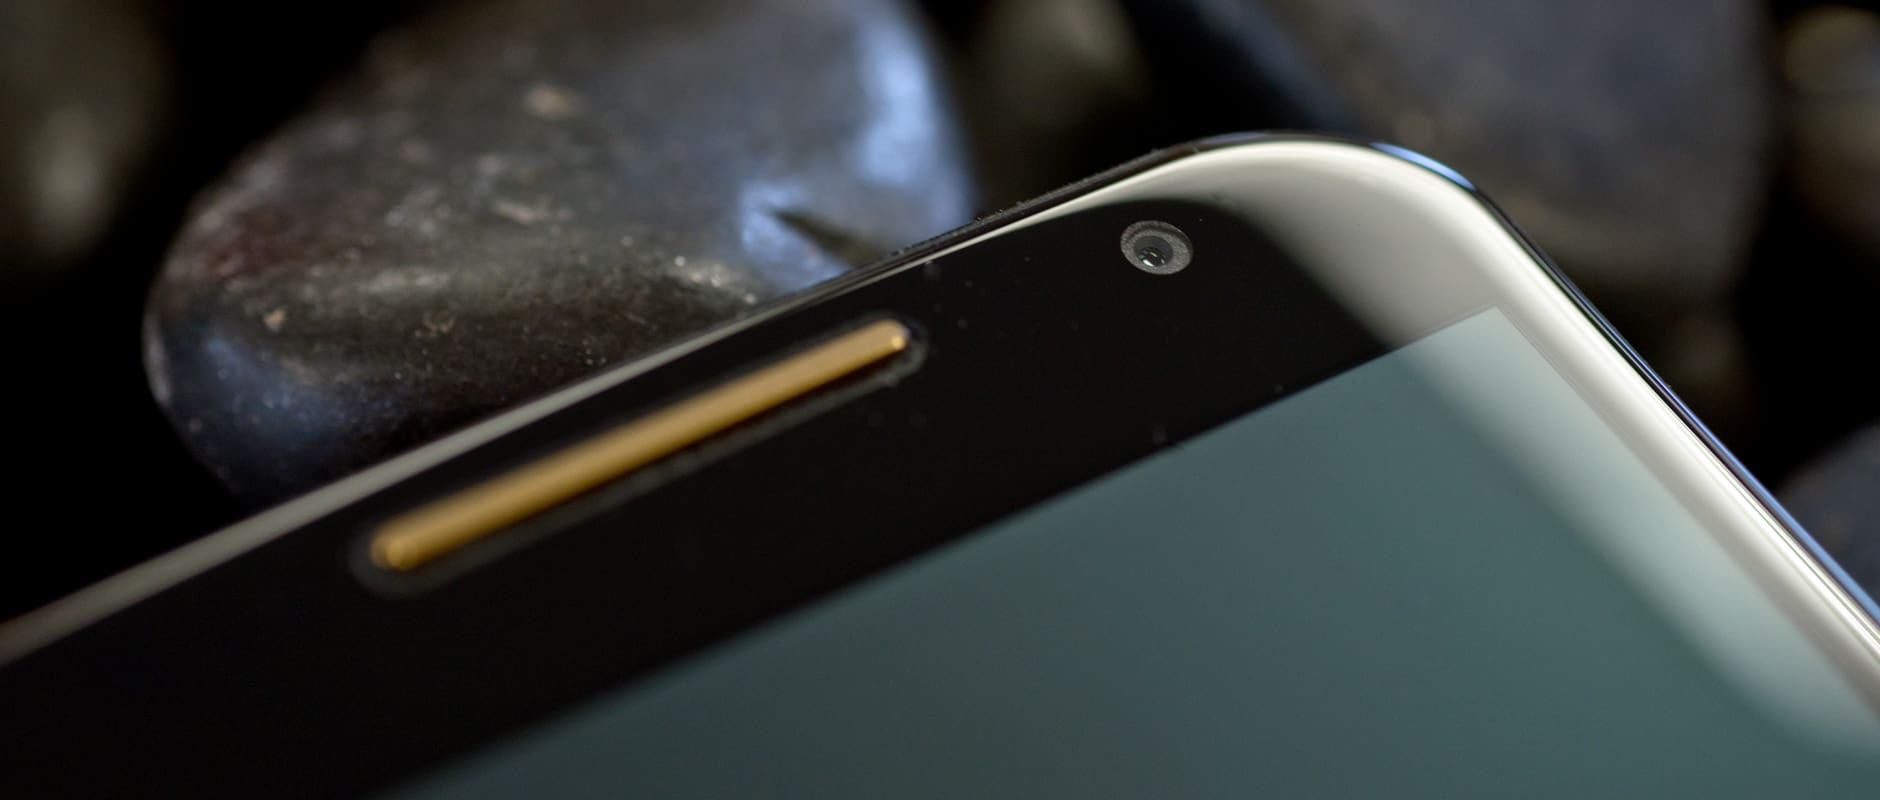 The earpiece and front-facing camera of the Motorola Moto X (2014 edition)